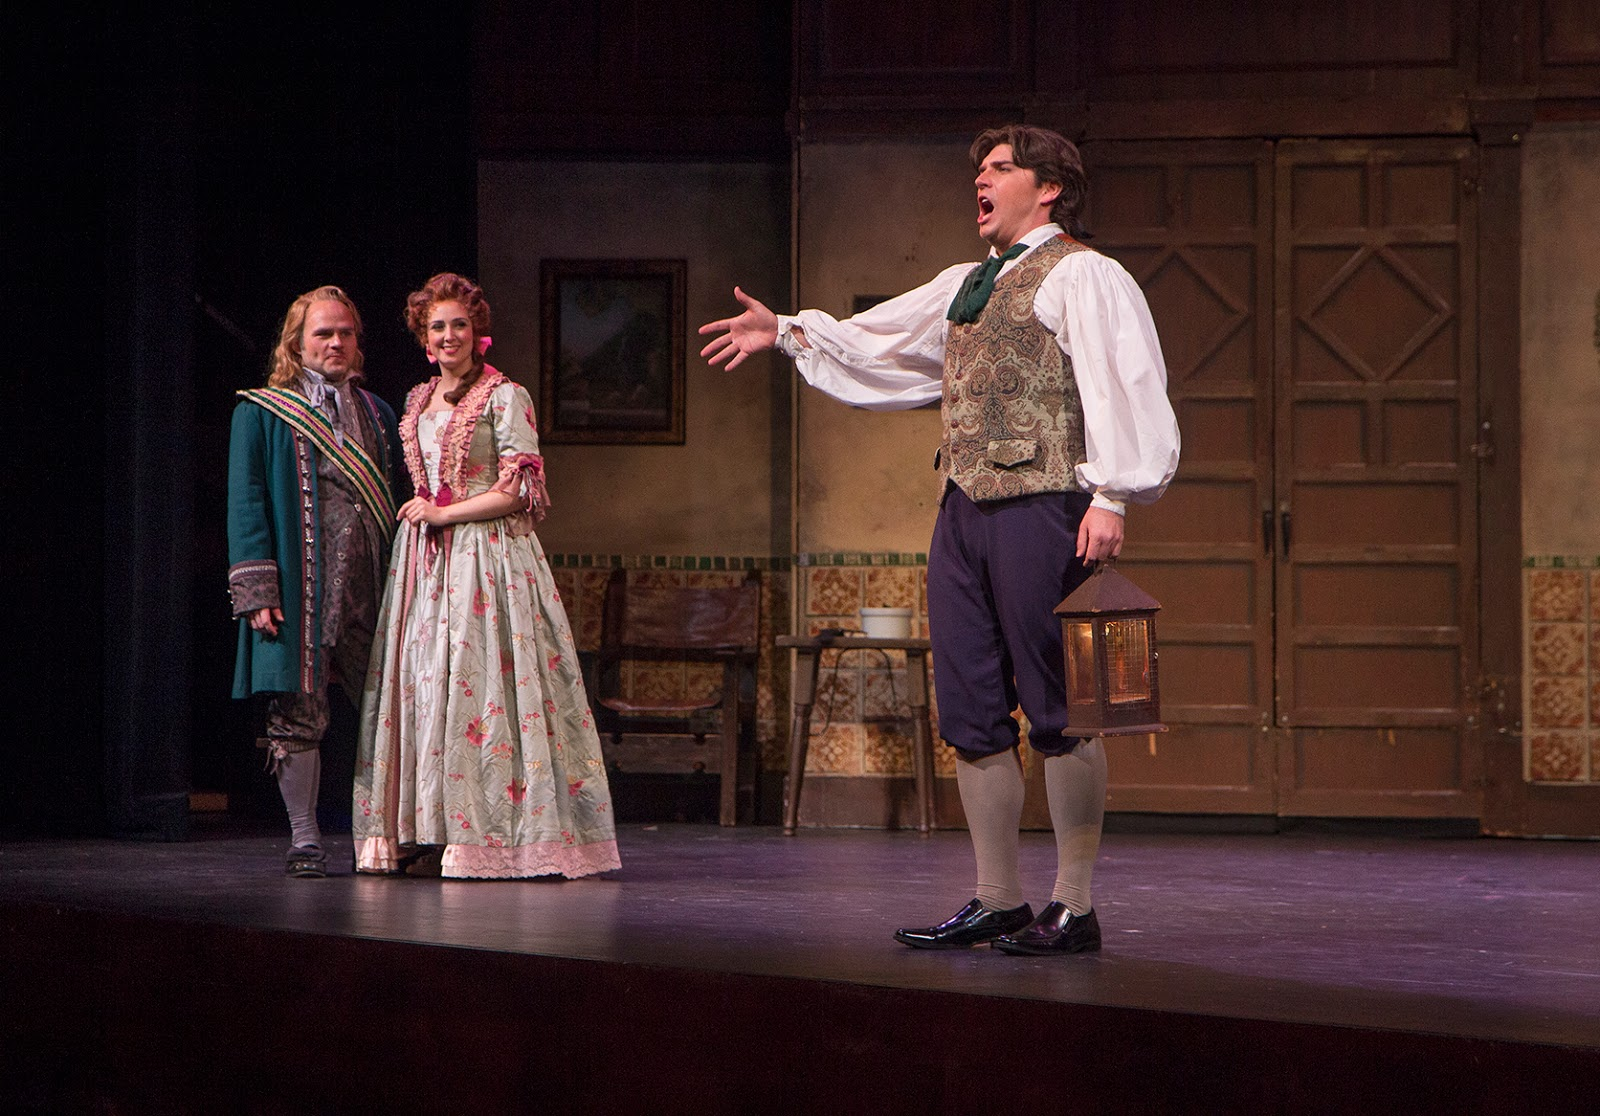 IN PERFORMANCE: (from left to right) tenor ANDREW OWENS as Conte Almaviva, mezzo-soprano CECELIA HALL as Rosina, and baritone DAVID PERSHALL as Figaro in Greensboro Opera's production of Gioachino Rossini's IL BARBIERE DI SIVIGLIA, January 2018 [Photo by Star Path Images, © by Greensboro Opera]